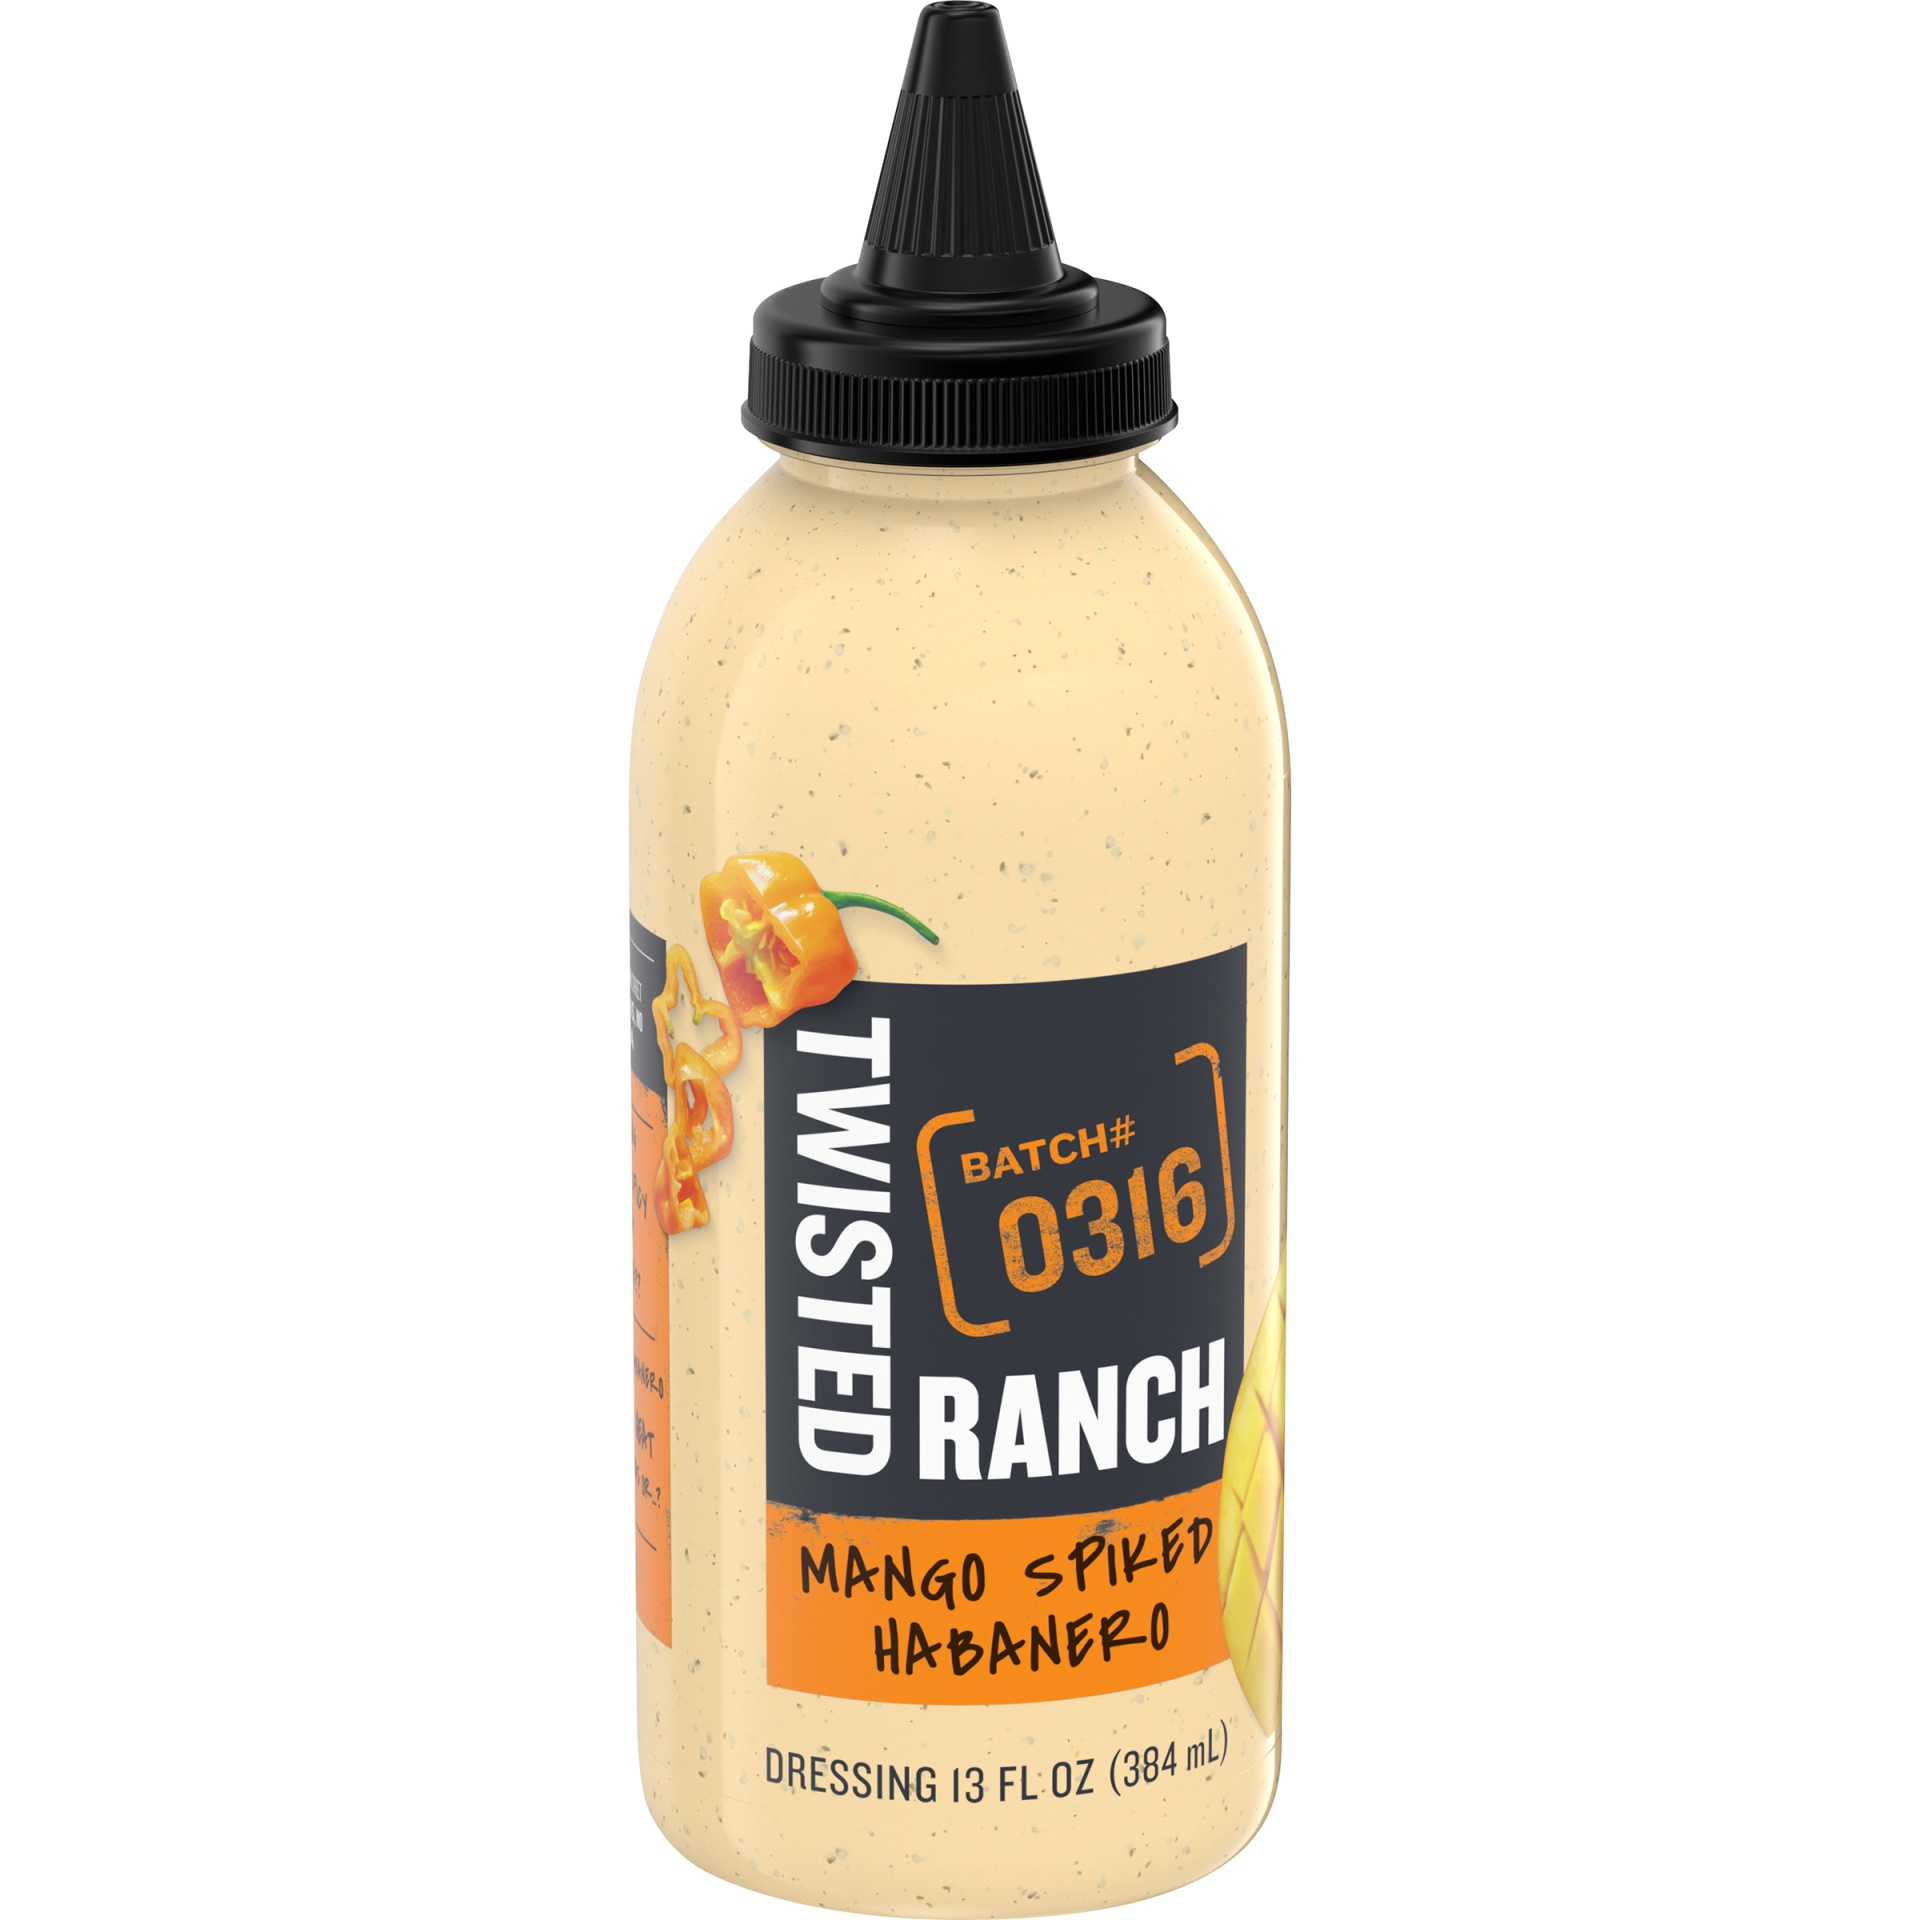 slide 2 of 6, Twisted Ranch Mango Spiked Habanero Dressing,